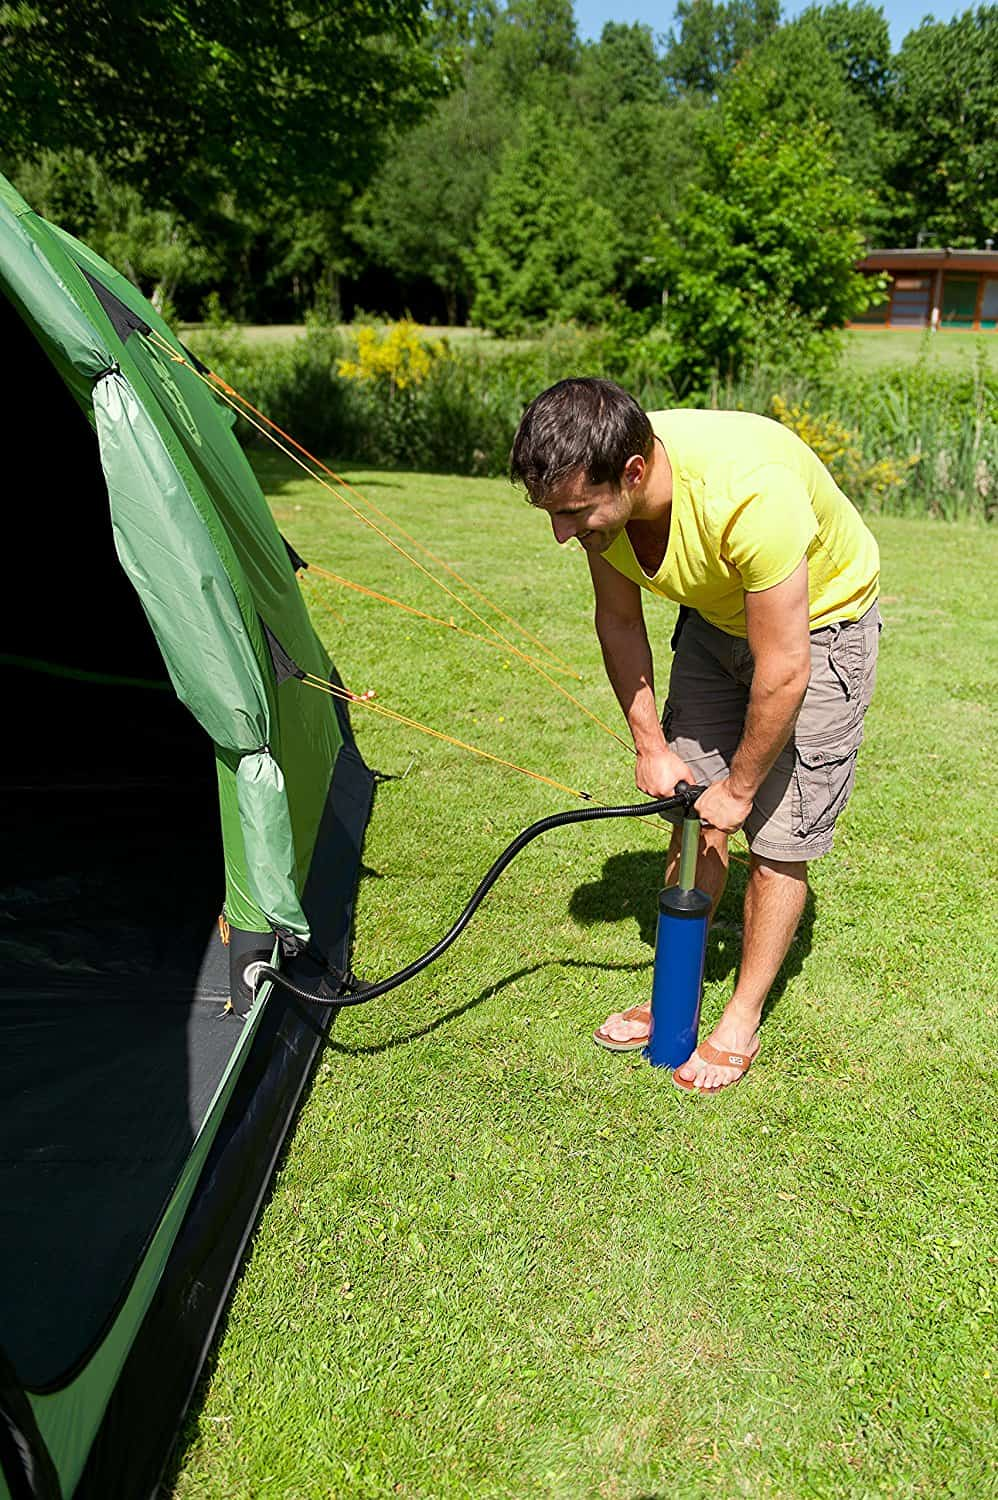 Talk about tents these days and youu0027ll end up talking inflatable. Pretty much every manufacturer has jumped on the bandwagon and created a line of tents ... : quick pitch tents - memphite.com